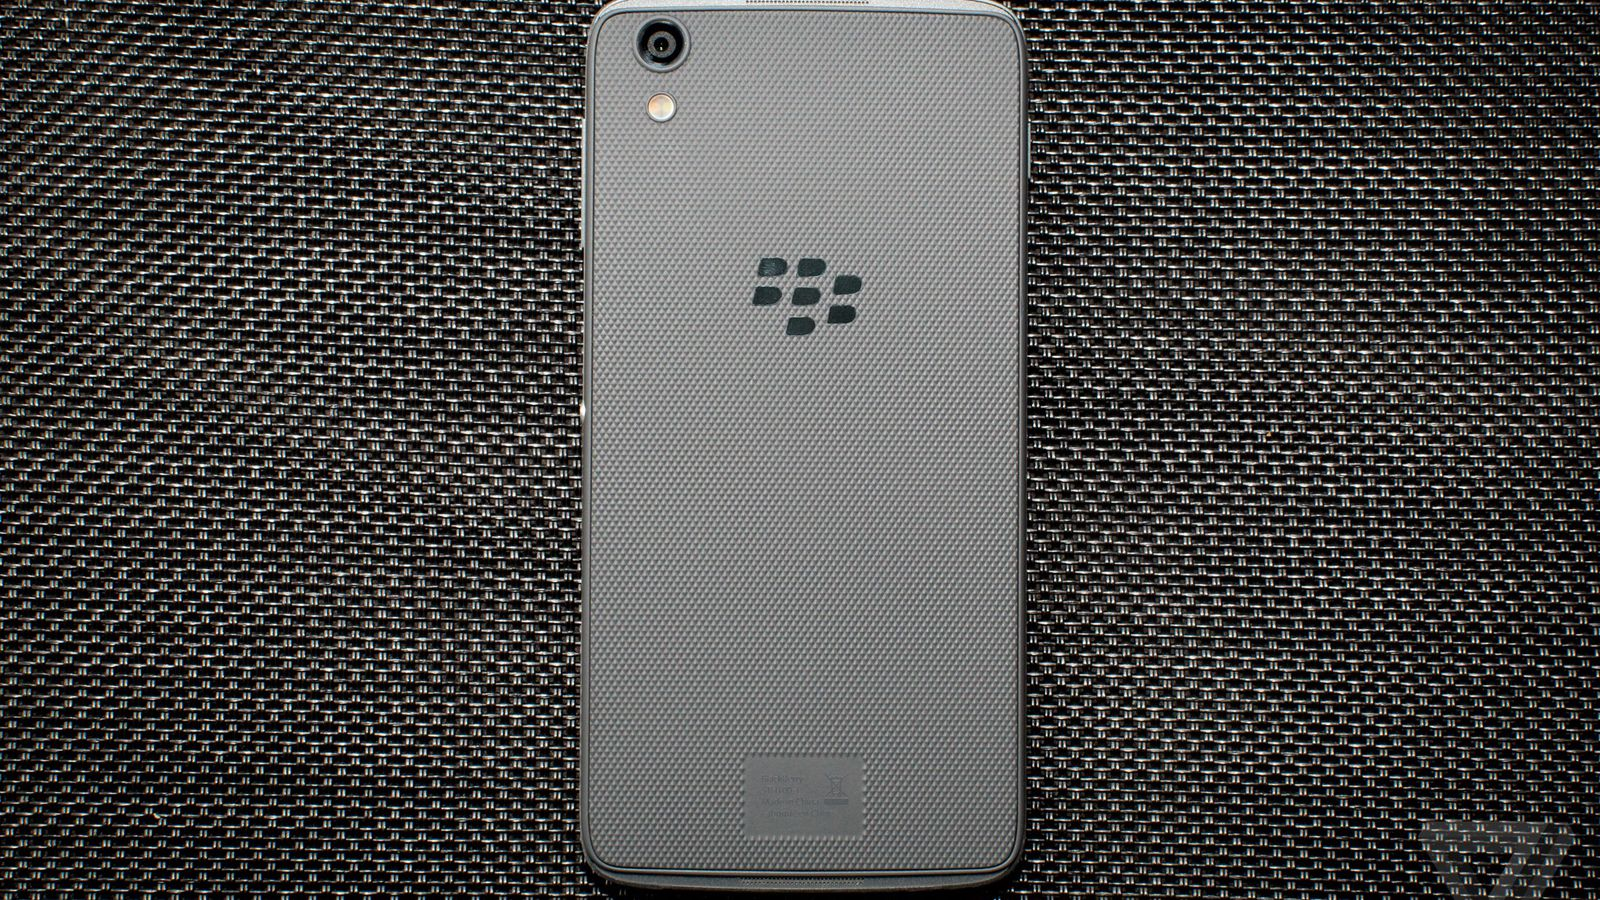 Camera Rumored Android Phones blackberrys next rumored android phone the dtek60 passed through fcc verge